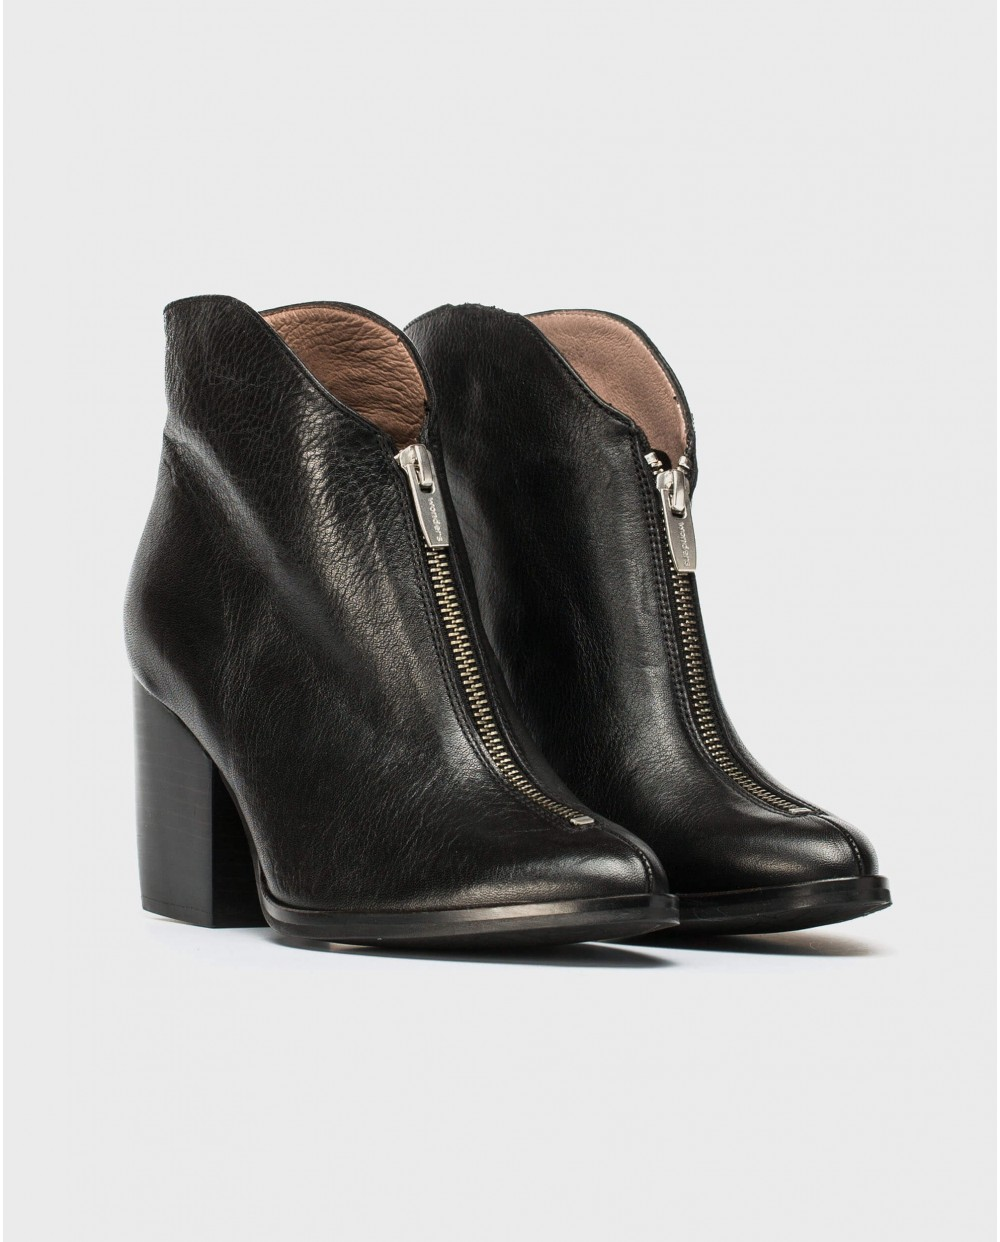 Wonders-Ankle Boots-Cowboy style ankle boot with zip